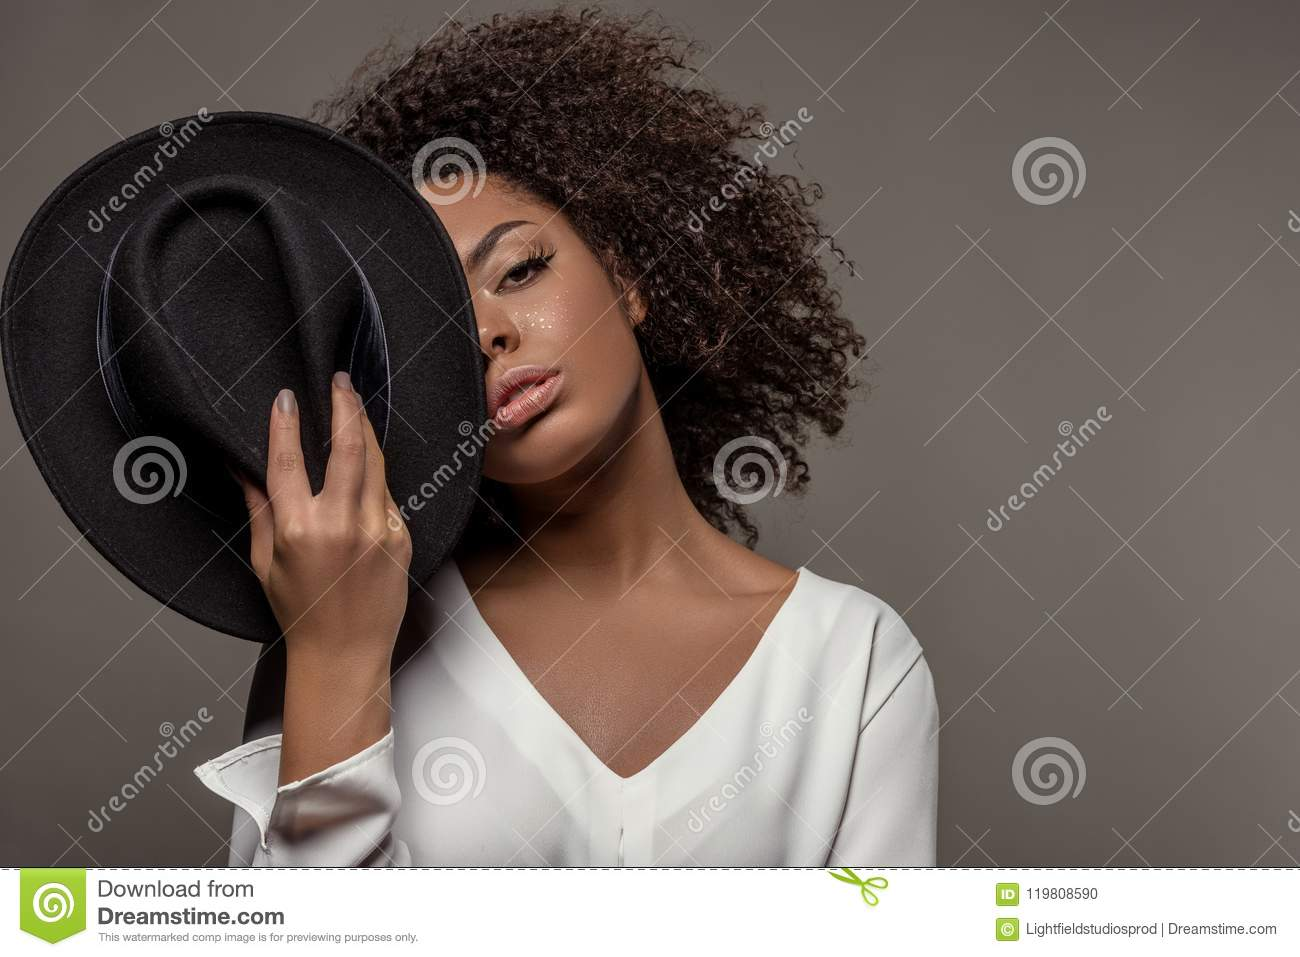 Attractive young african american woman in white shirt holding black hat over half of her face